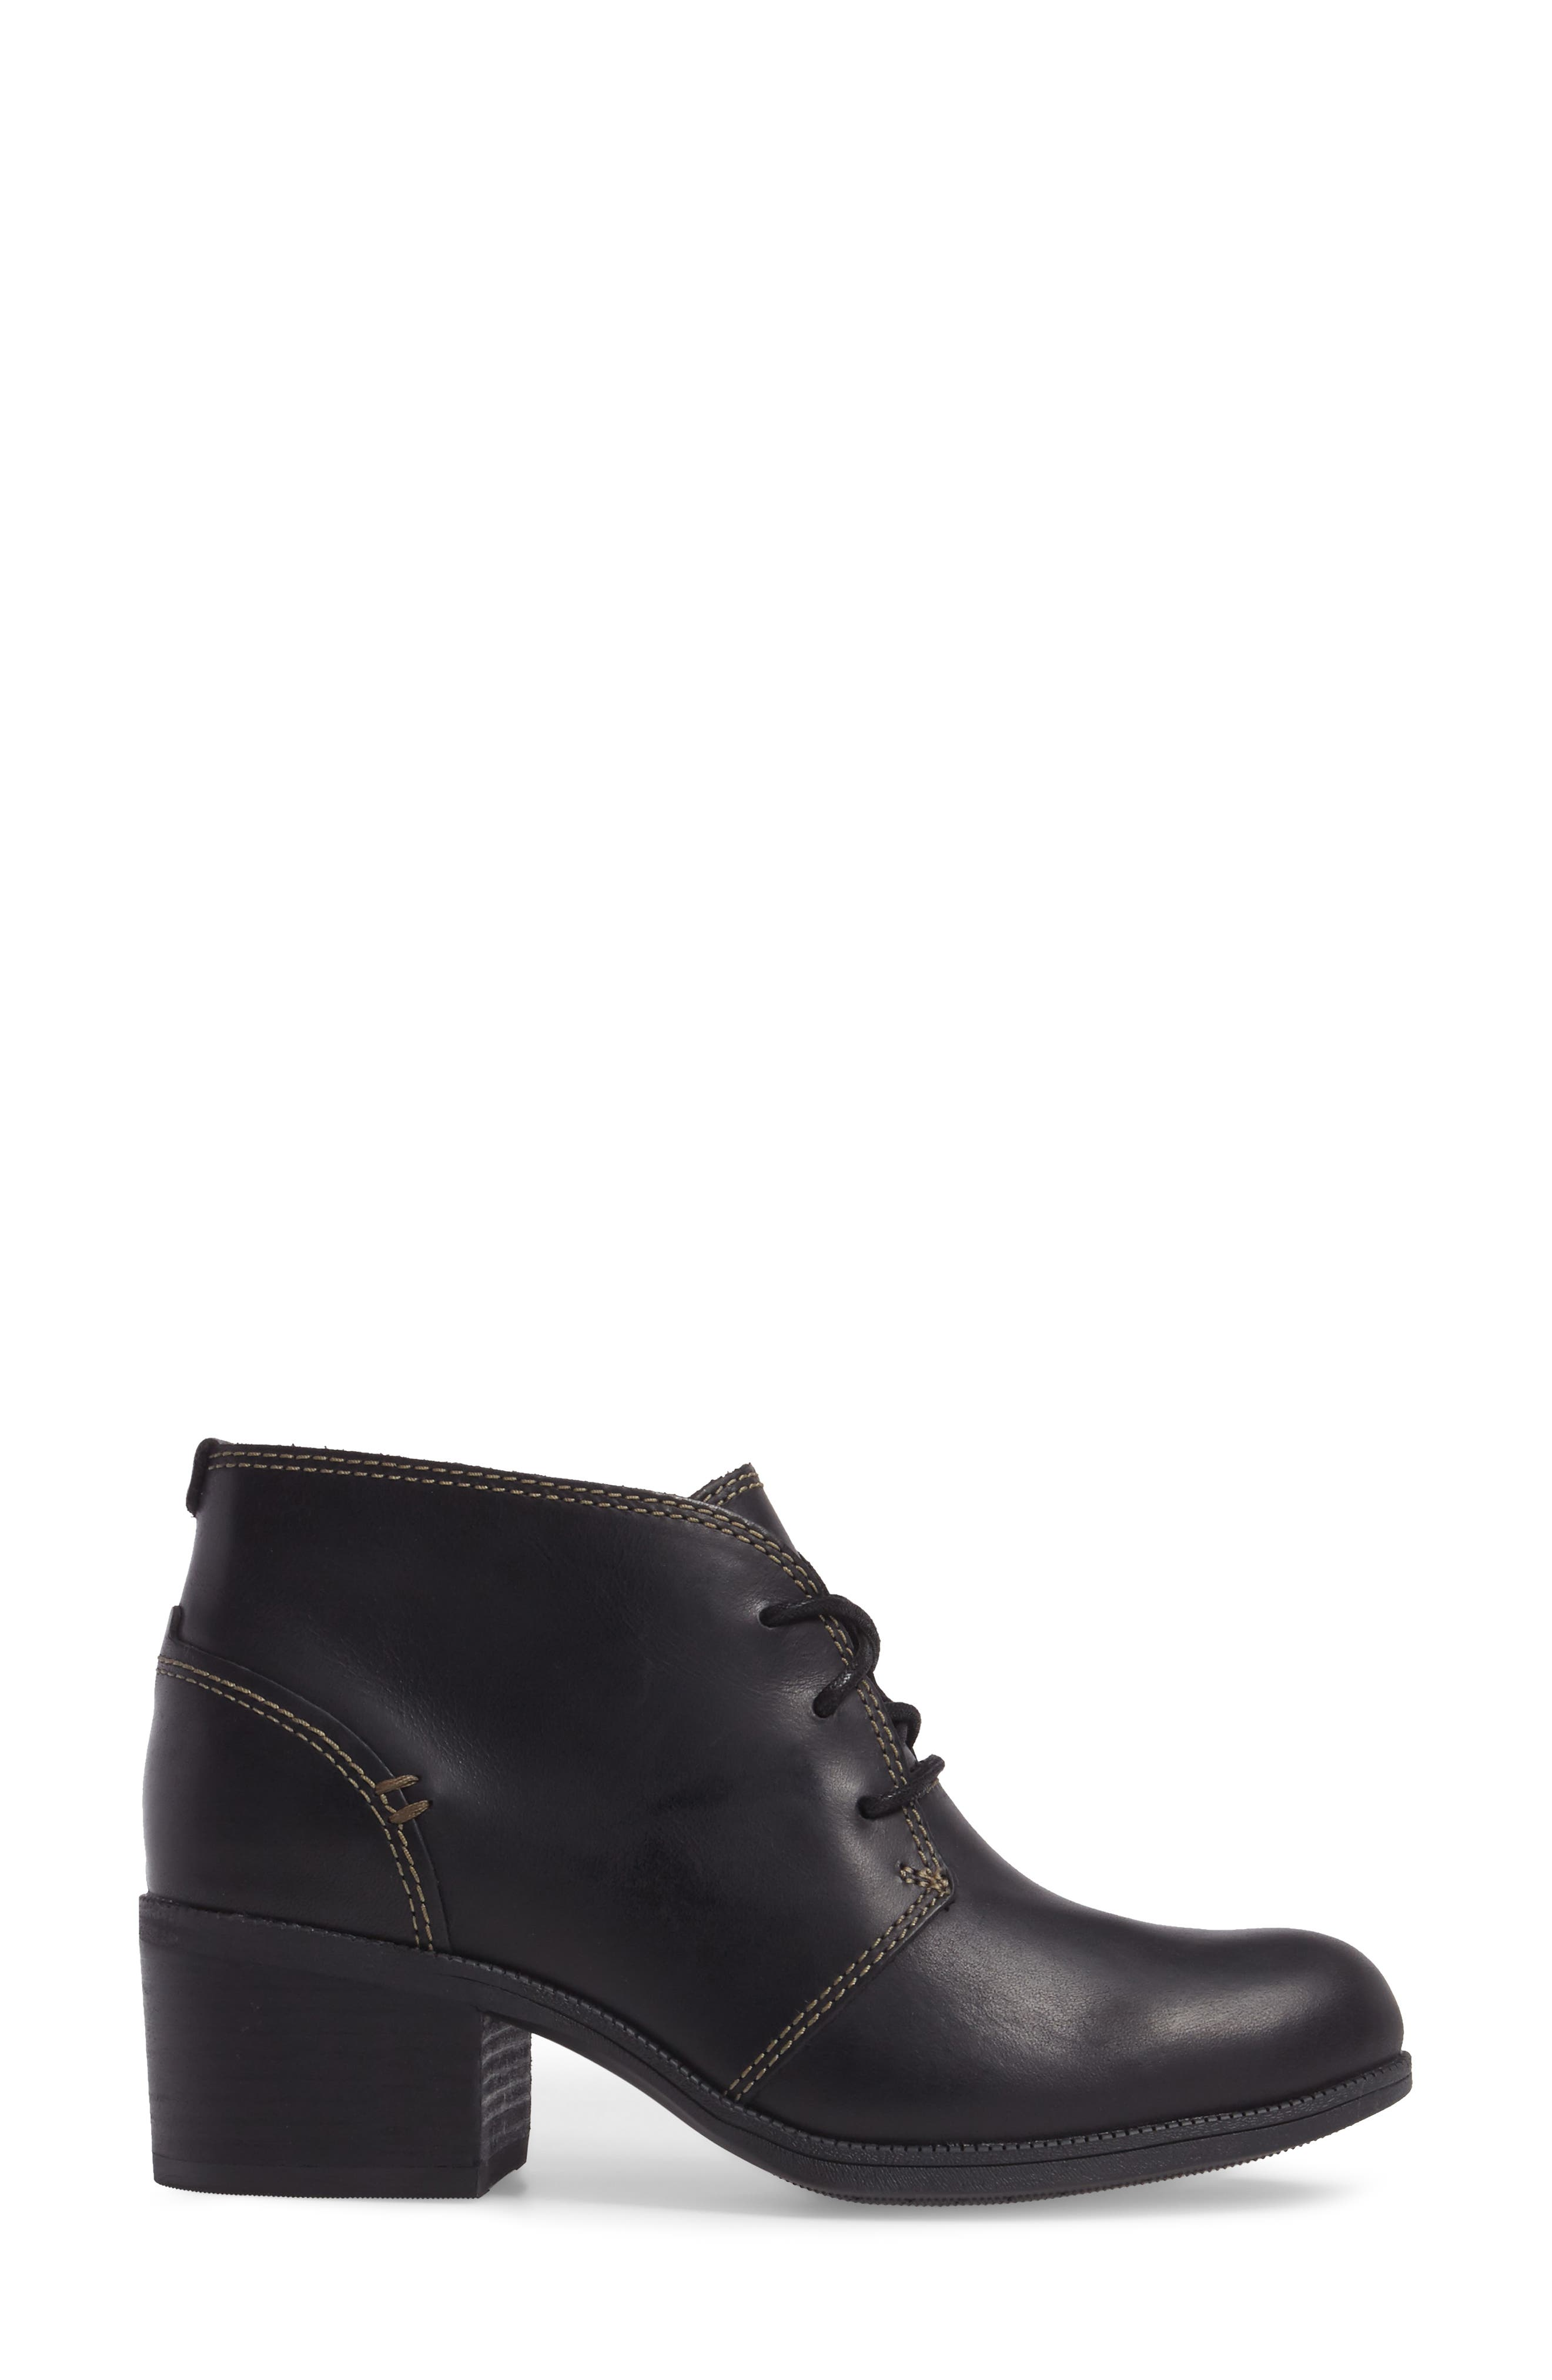 Maypearl Floral Boot,                             Alternate thumbnail 3, color,                             001